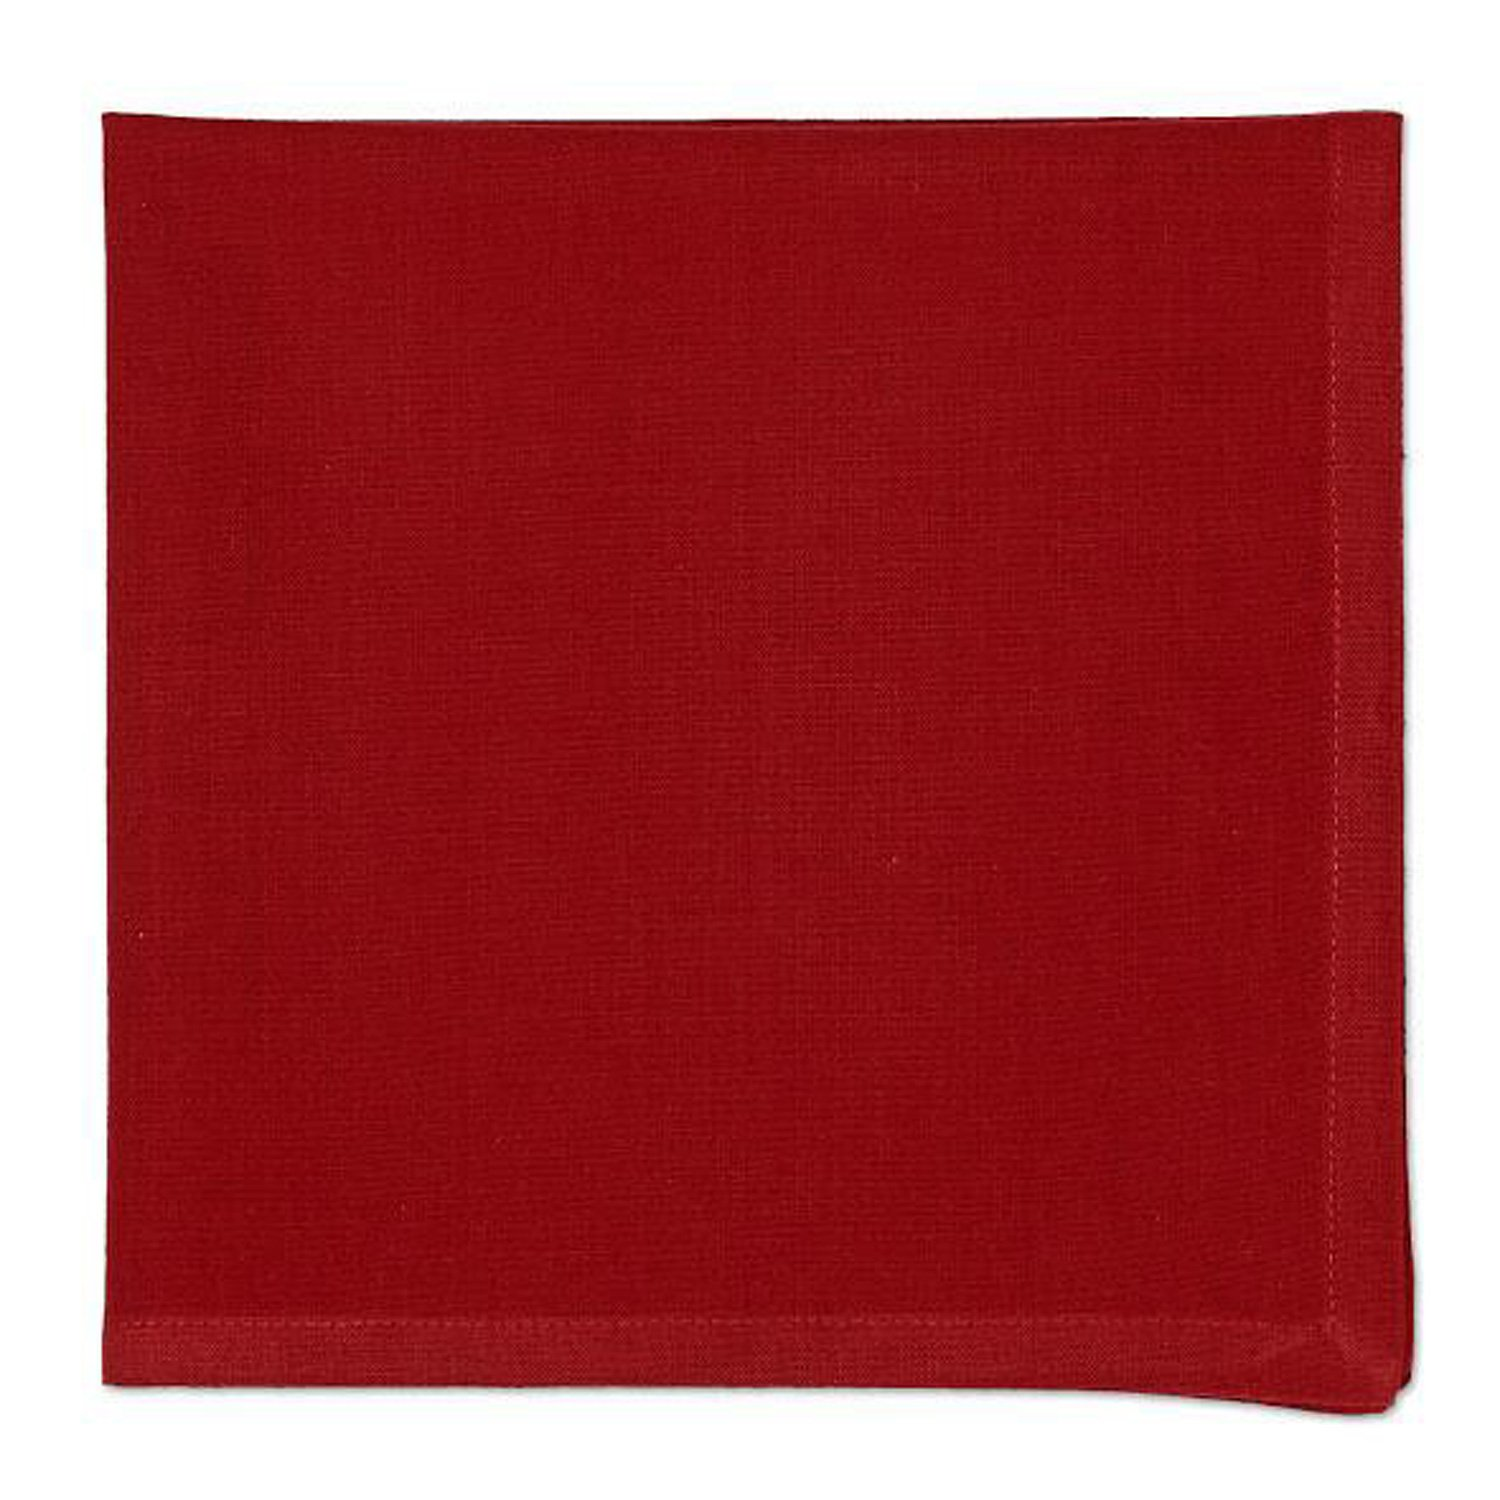 Design Imports A Walk in the Woods Table Linens, 20-Inch by 20-Inch Napkins, Set of 4, Garnet